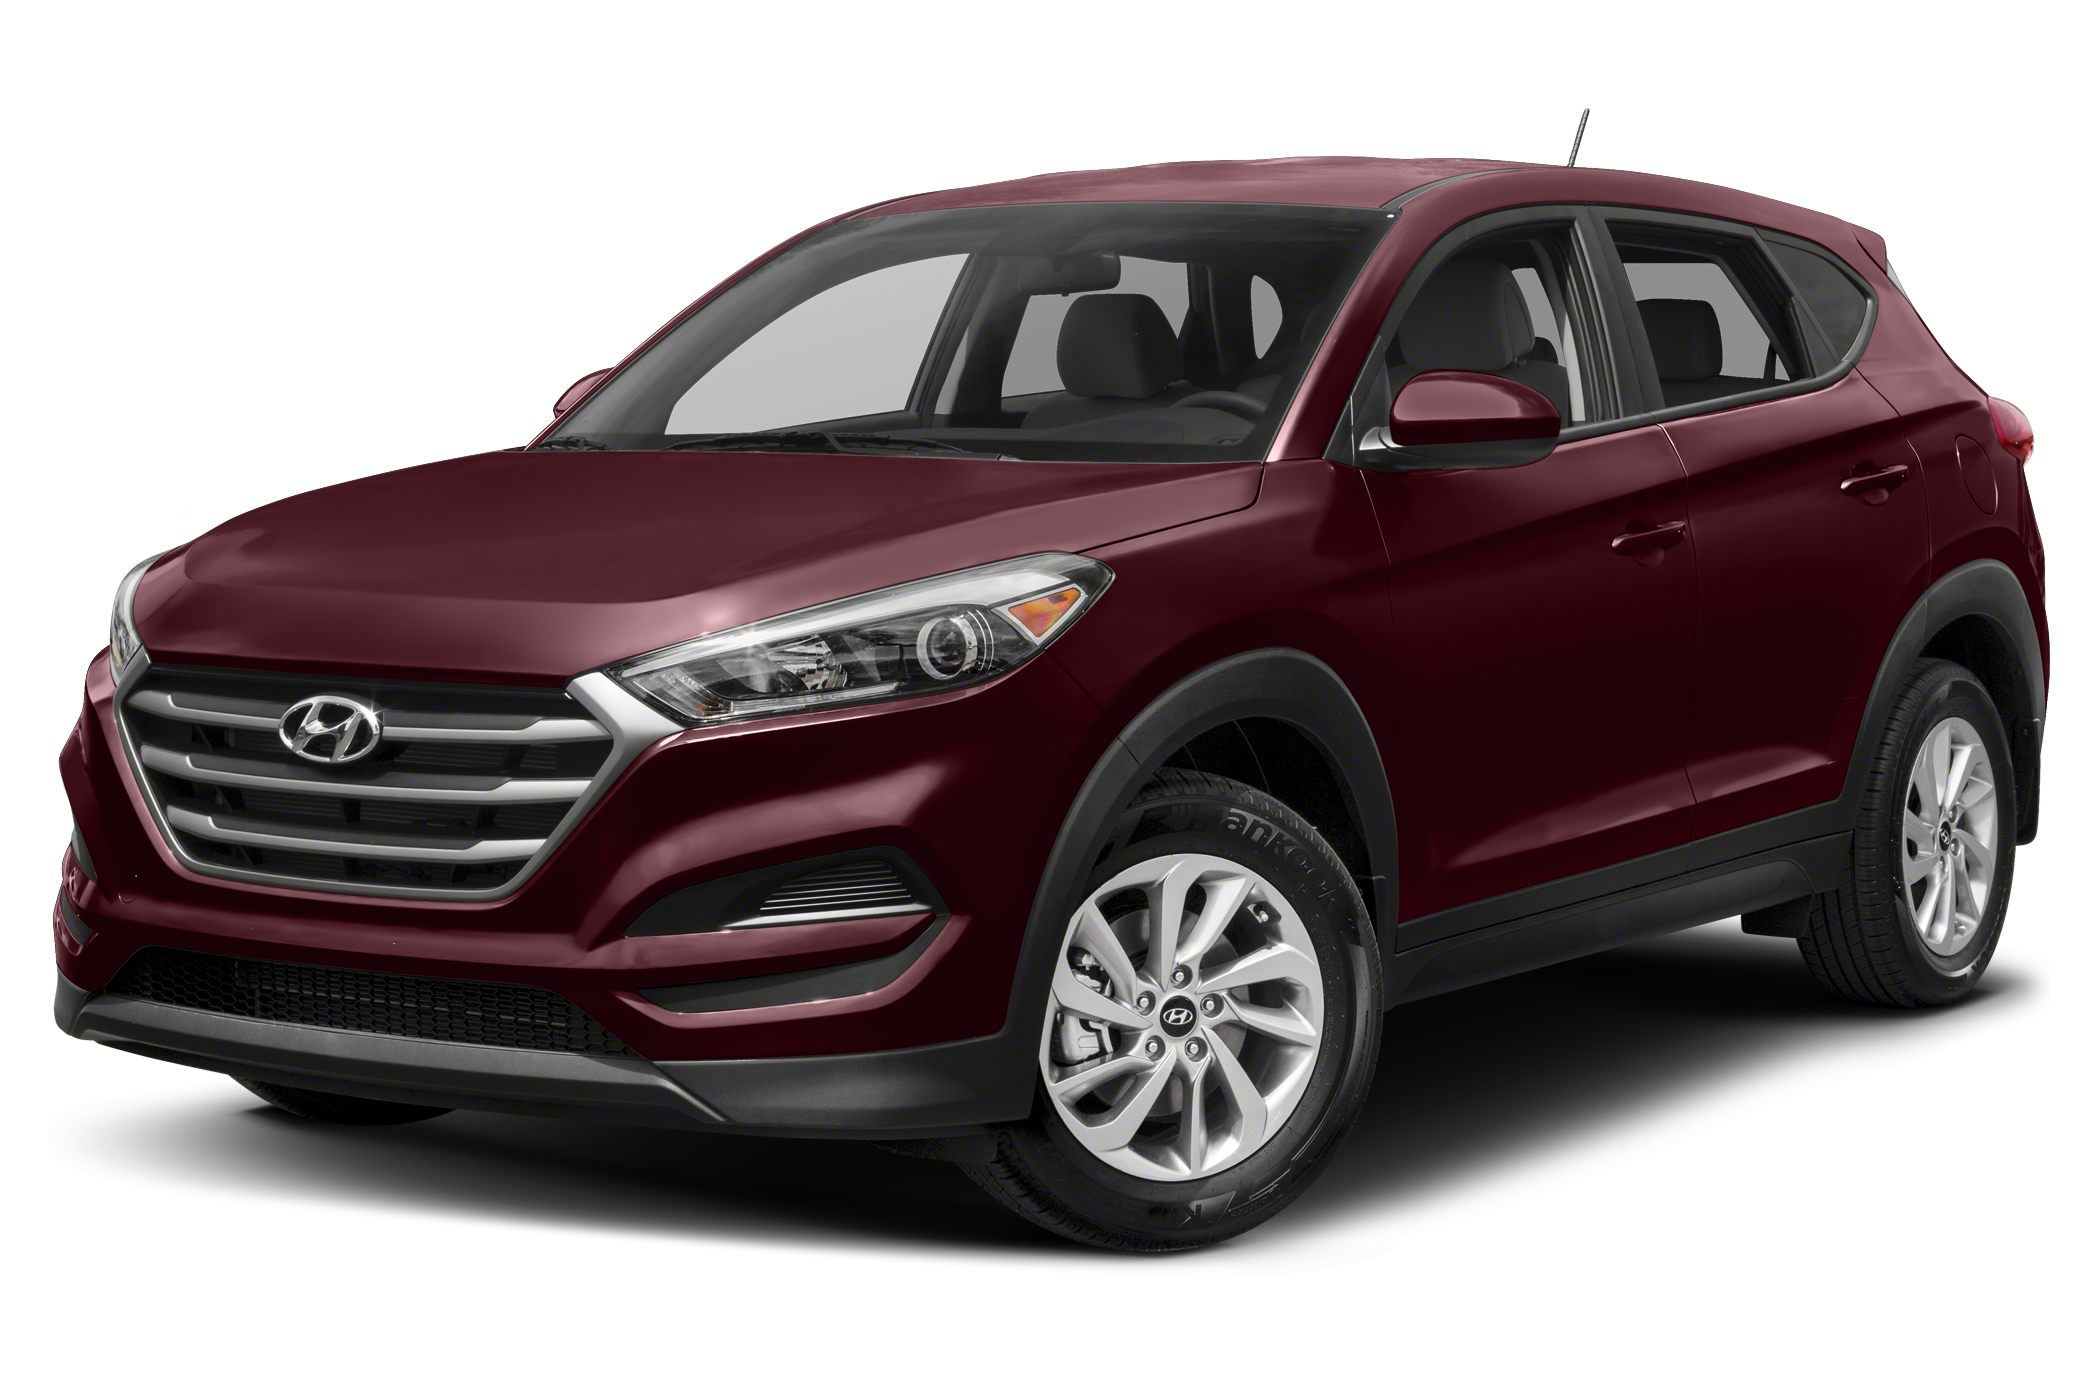 Hyundai Canada Incentives for the new 2018 Tucson SUV Crossover and Tucson Fuel Cell Electric Vehicle in Milton, Toronto, and the GTA